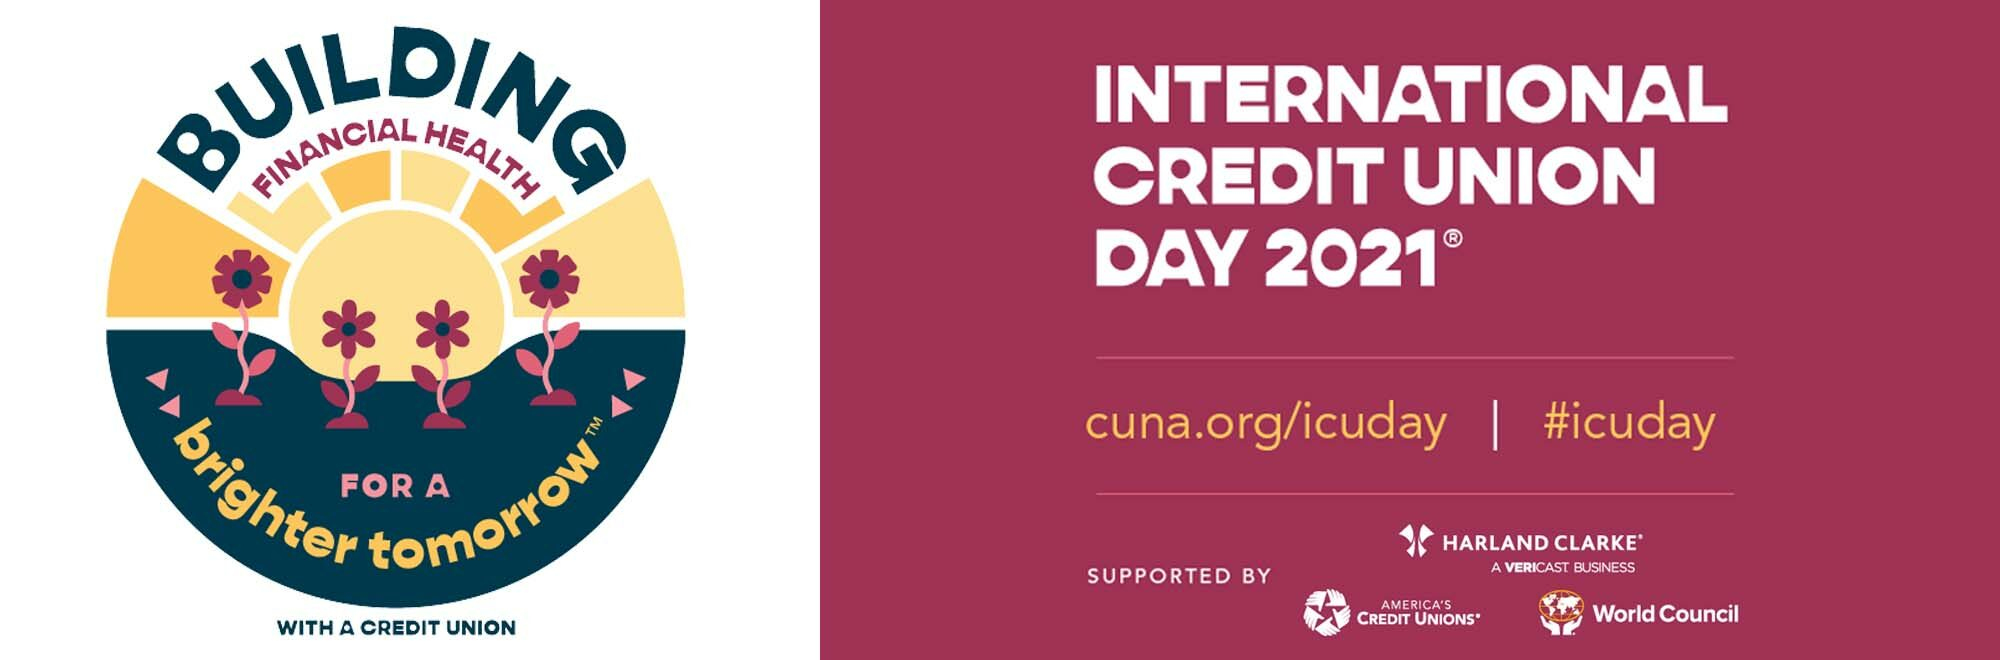 Cartoon image with text promoting international credit union day